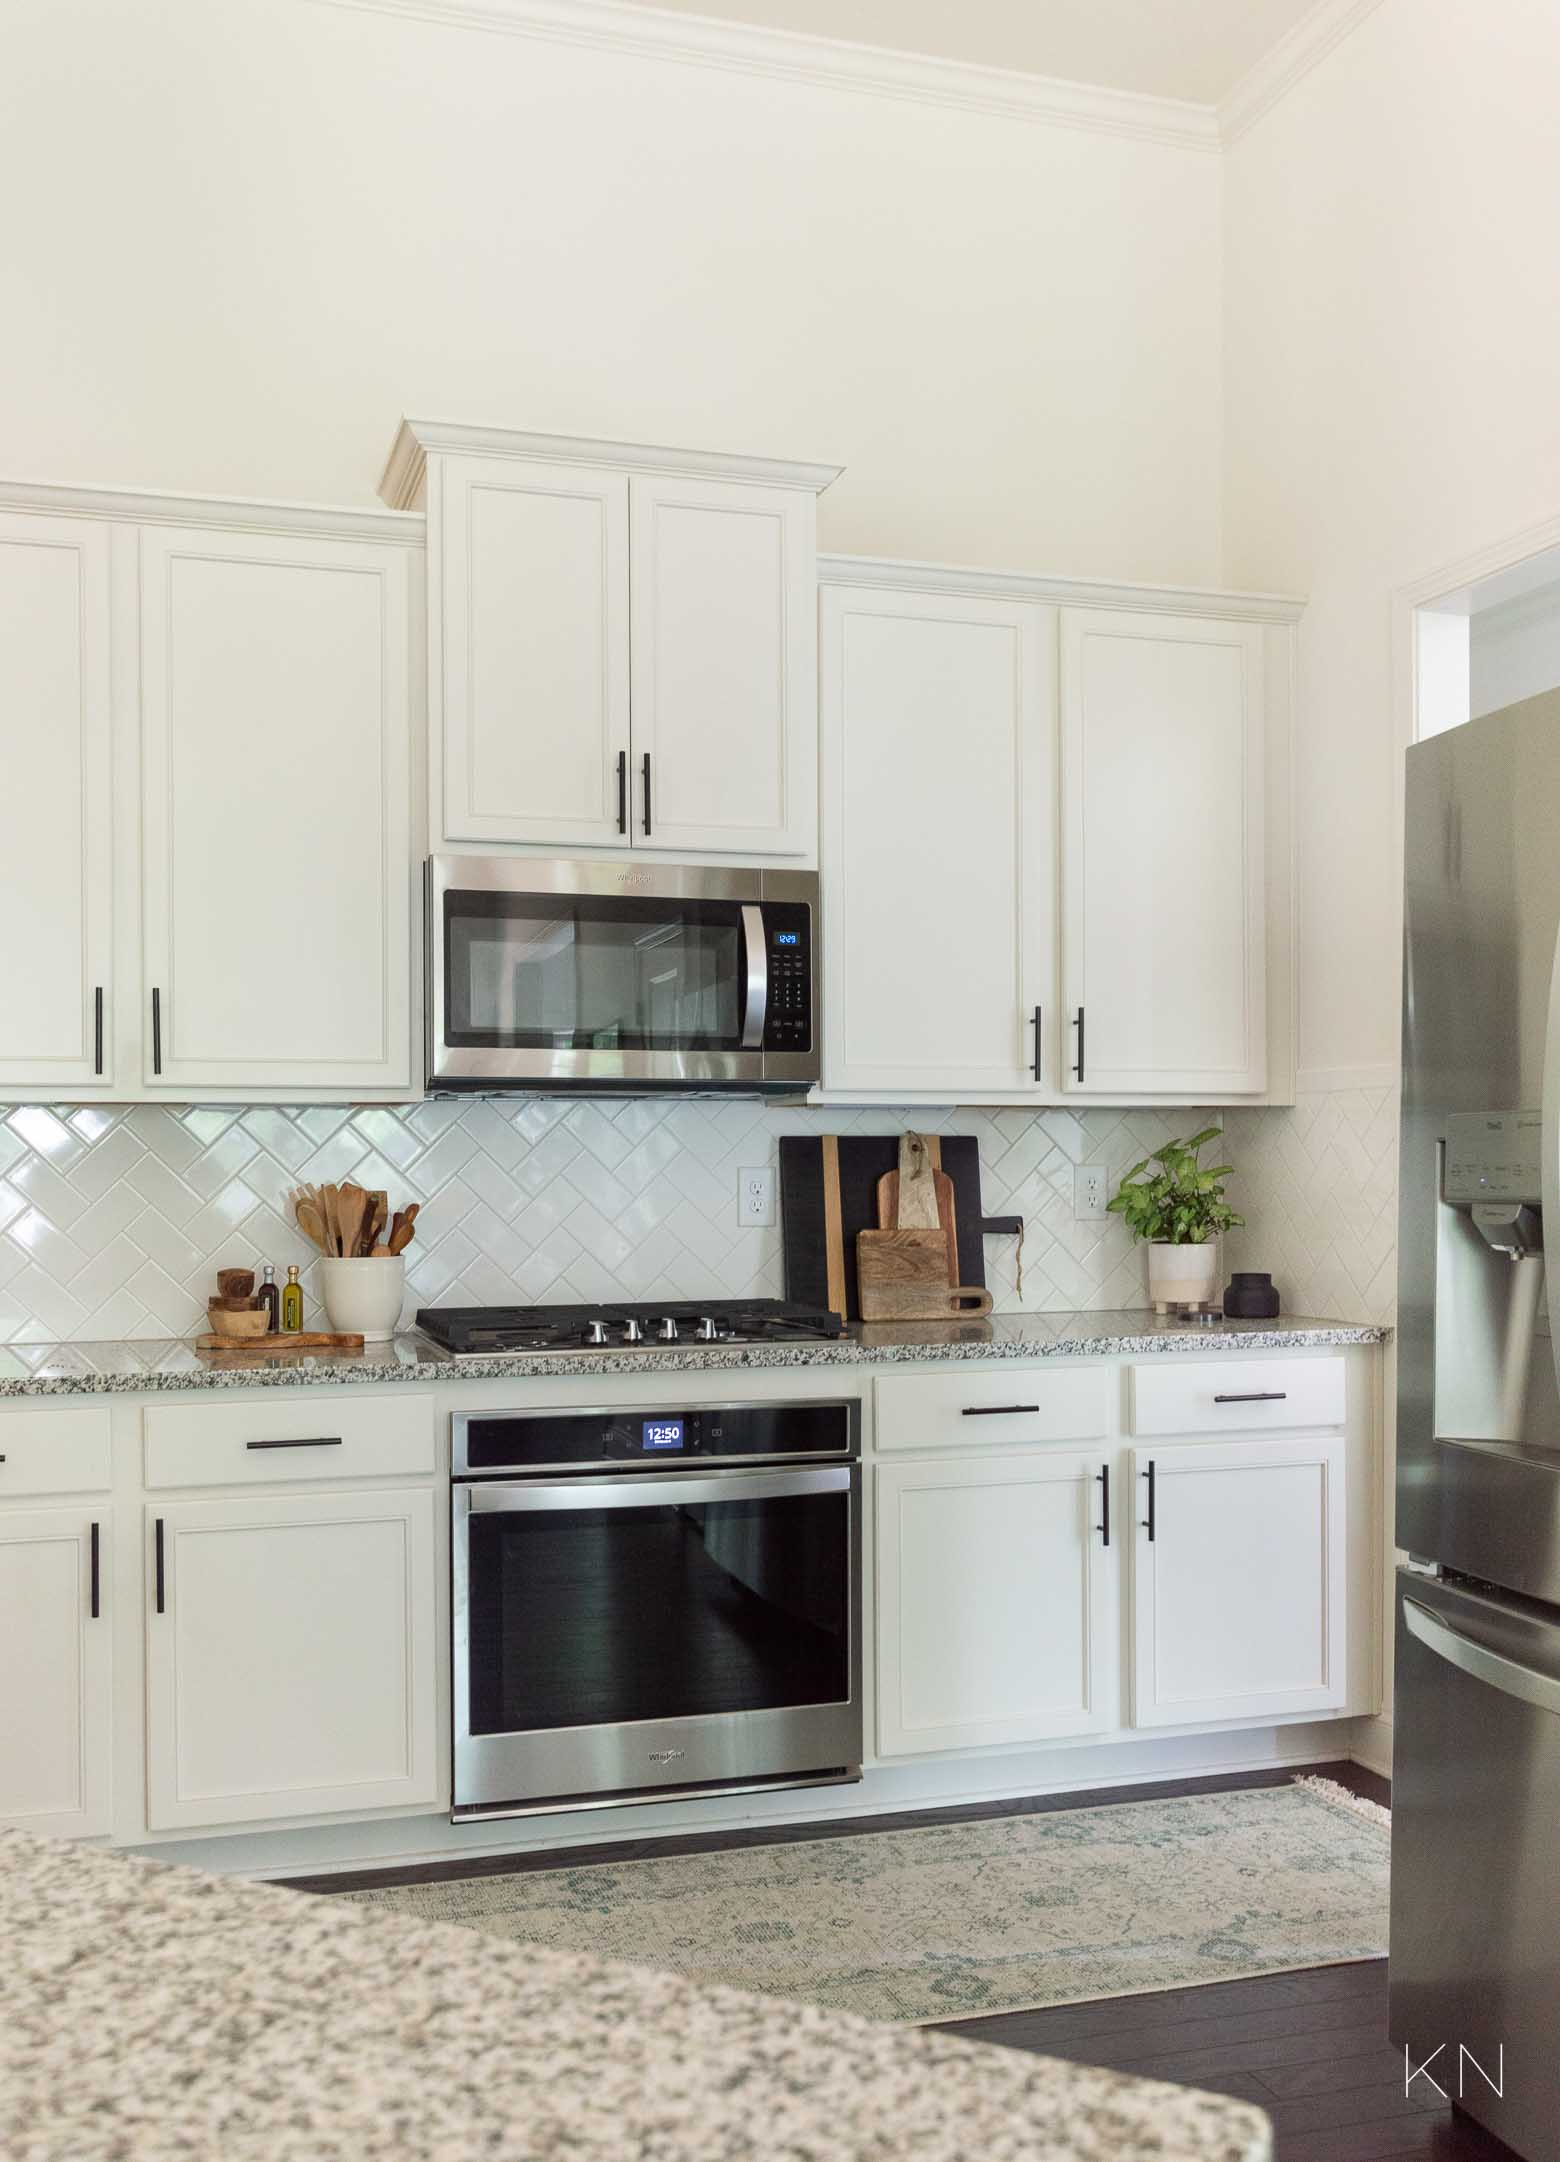 Easy Updates to a Builder Grade Kitchen You Can Make in a Weekend